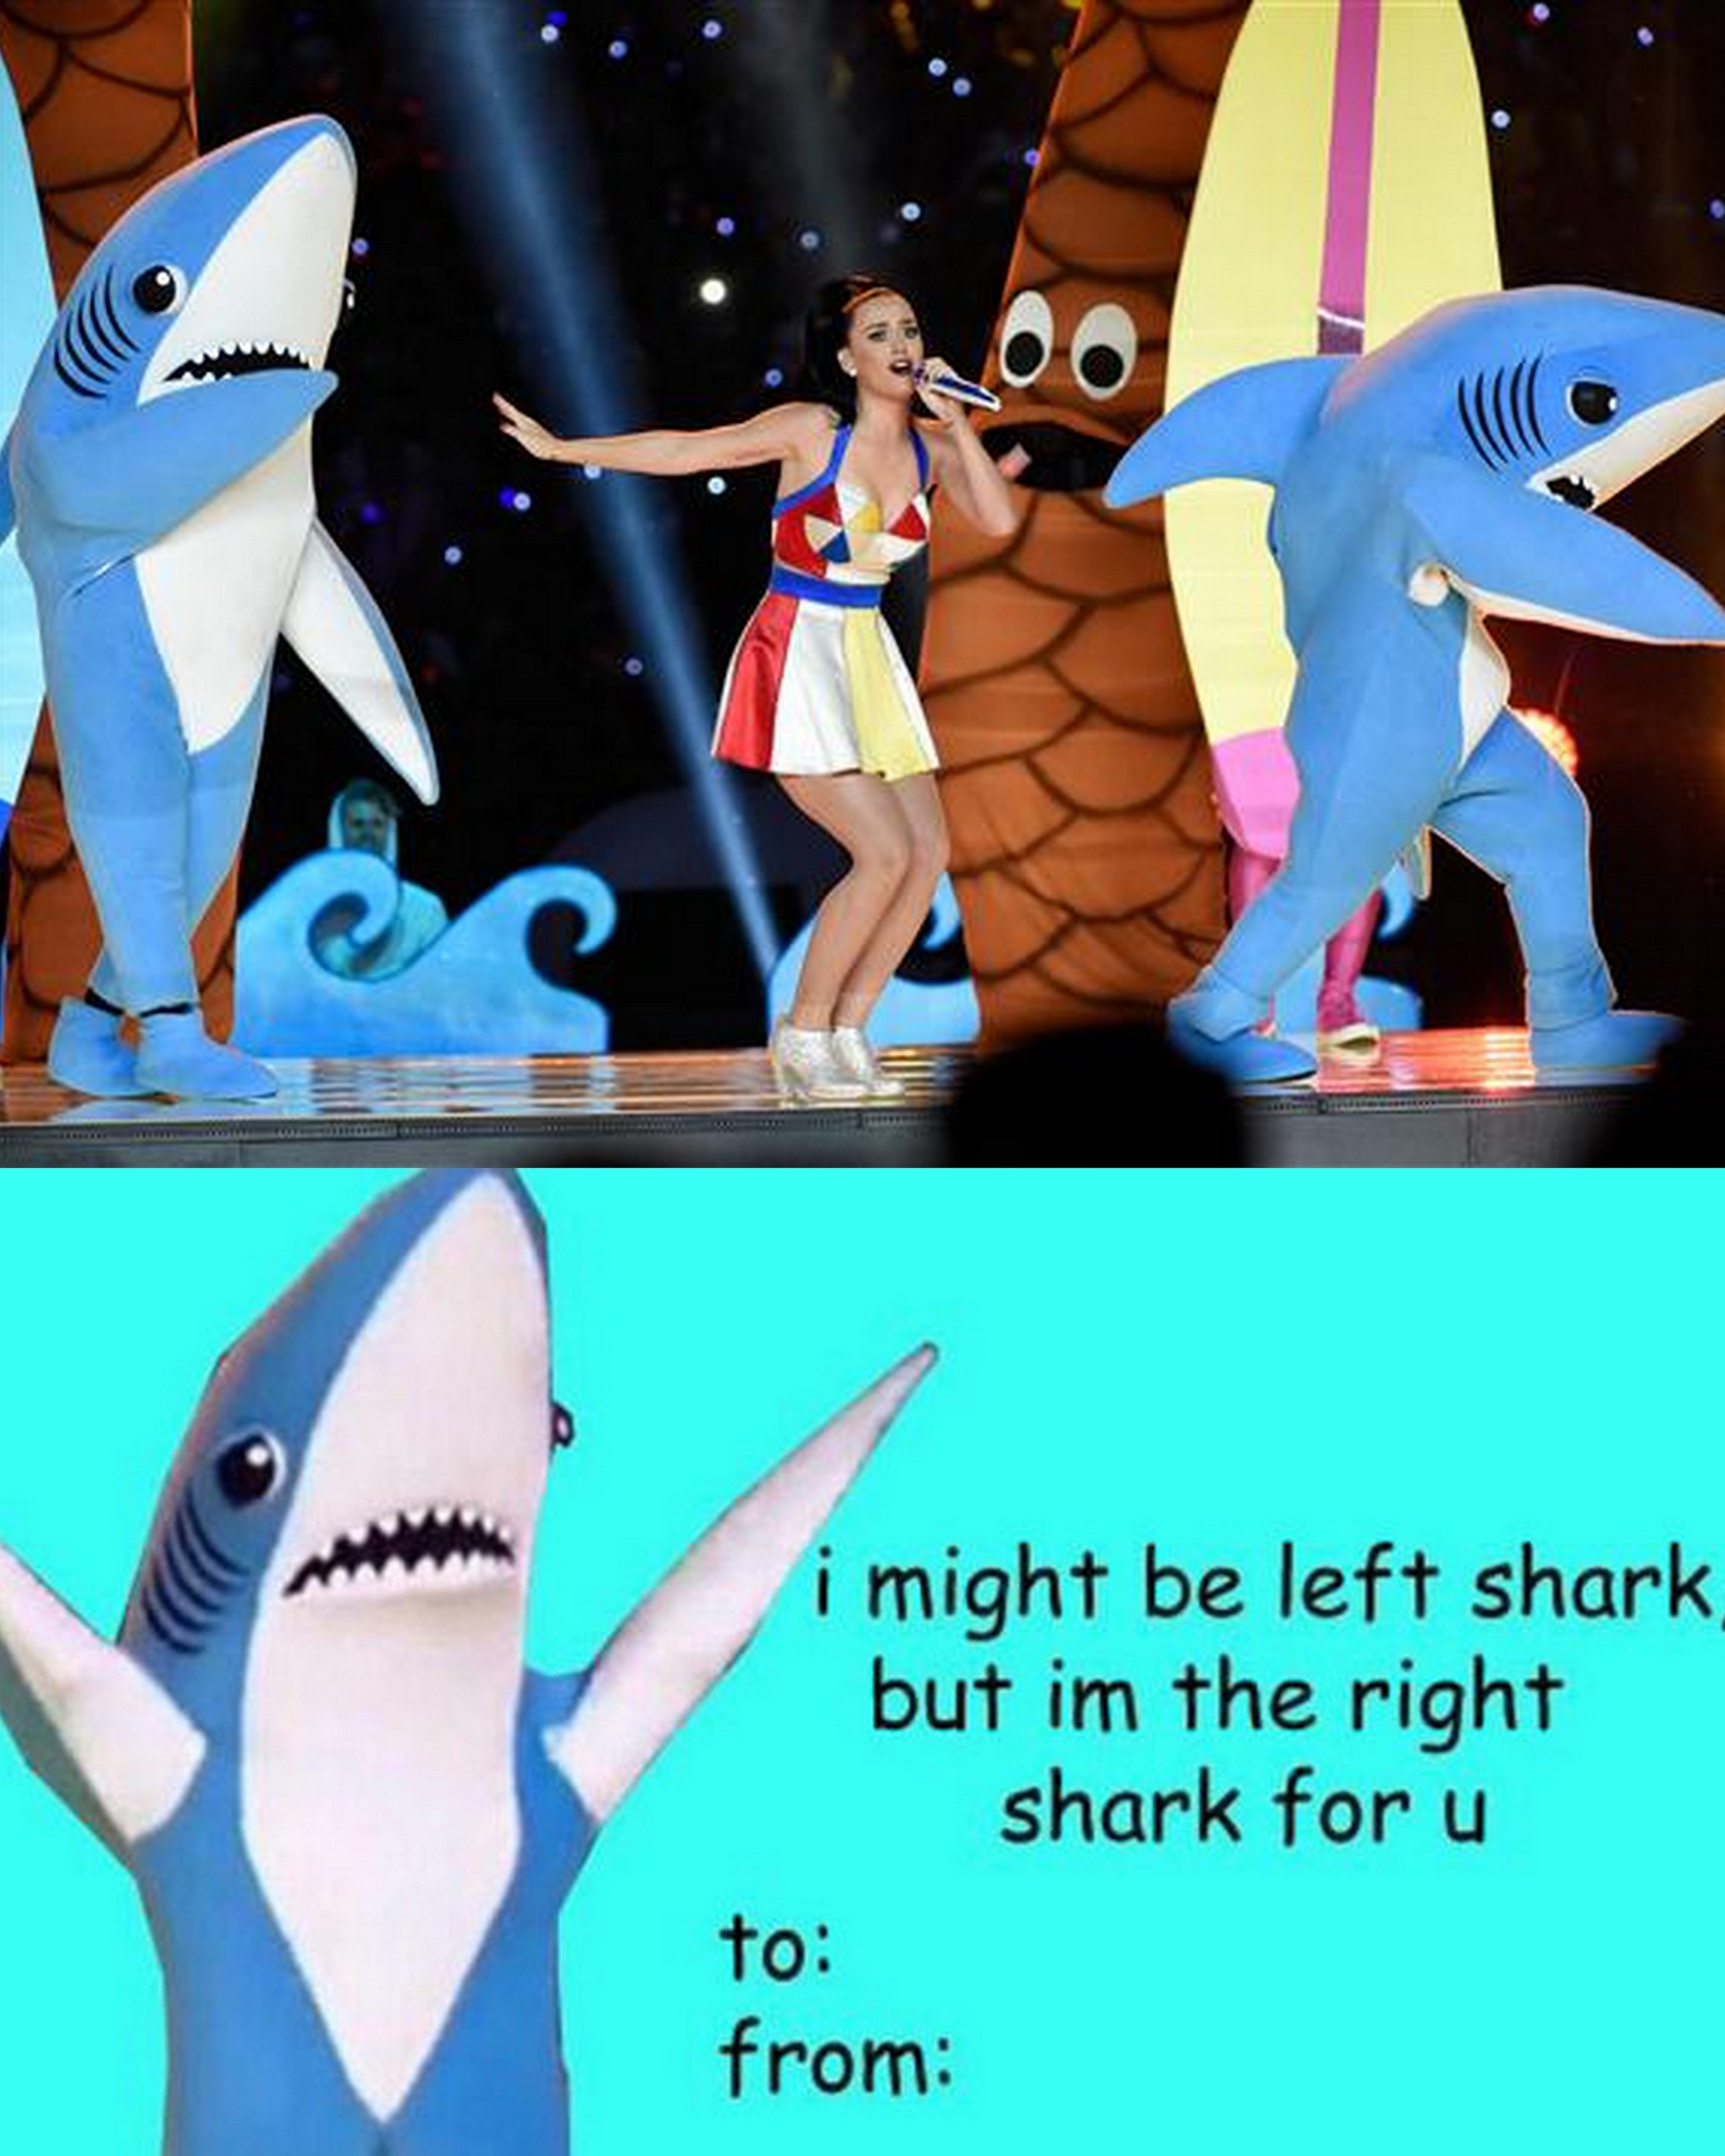 Katy Perry's Left Shark stars in his own Valentine's Day card